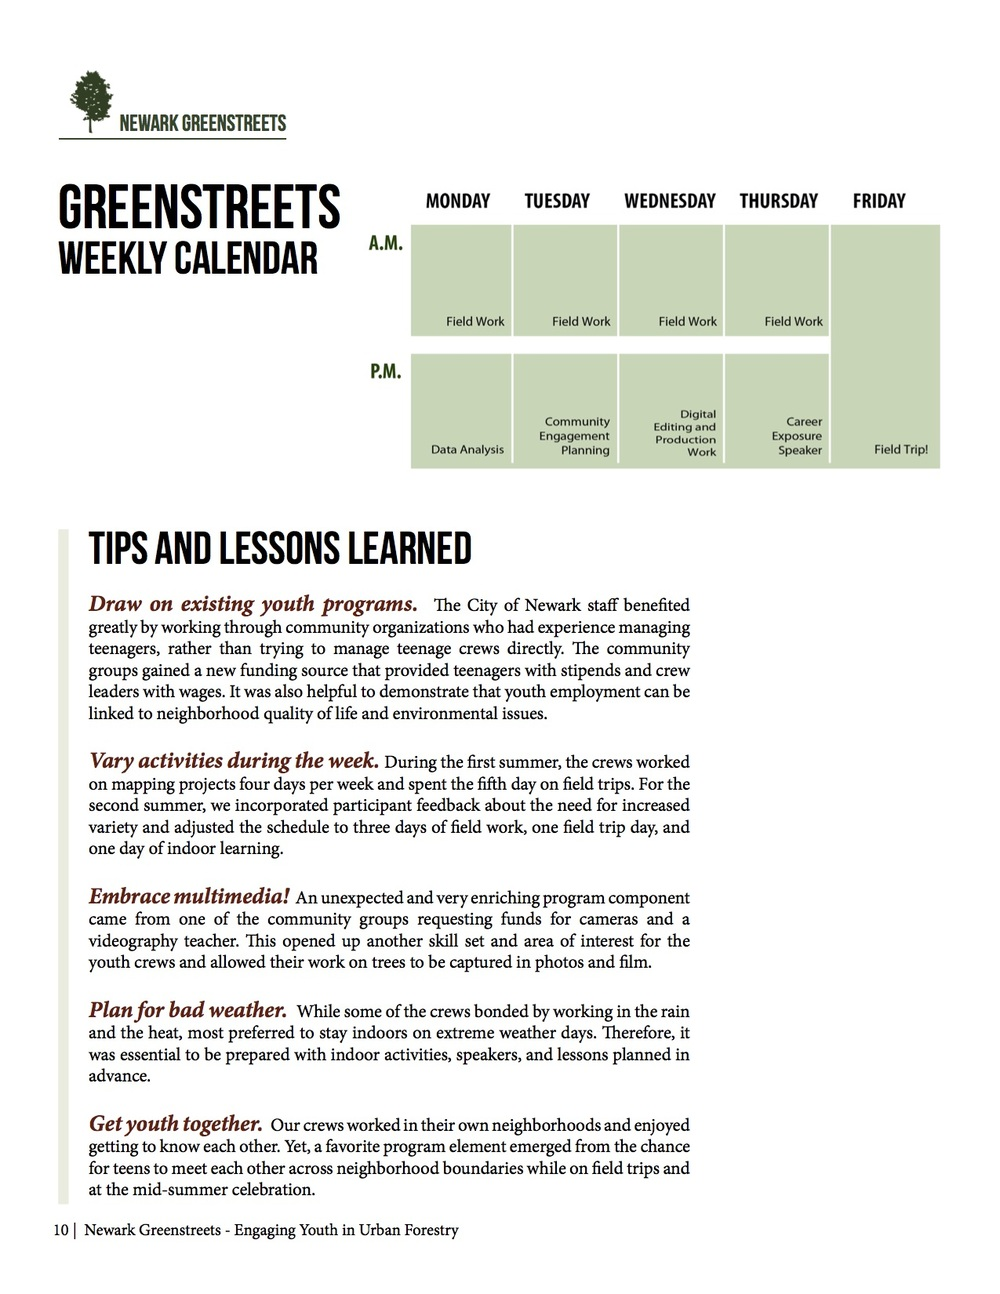 Grow Your Own_Newark Greenstreets-10.jpg